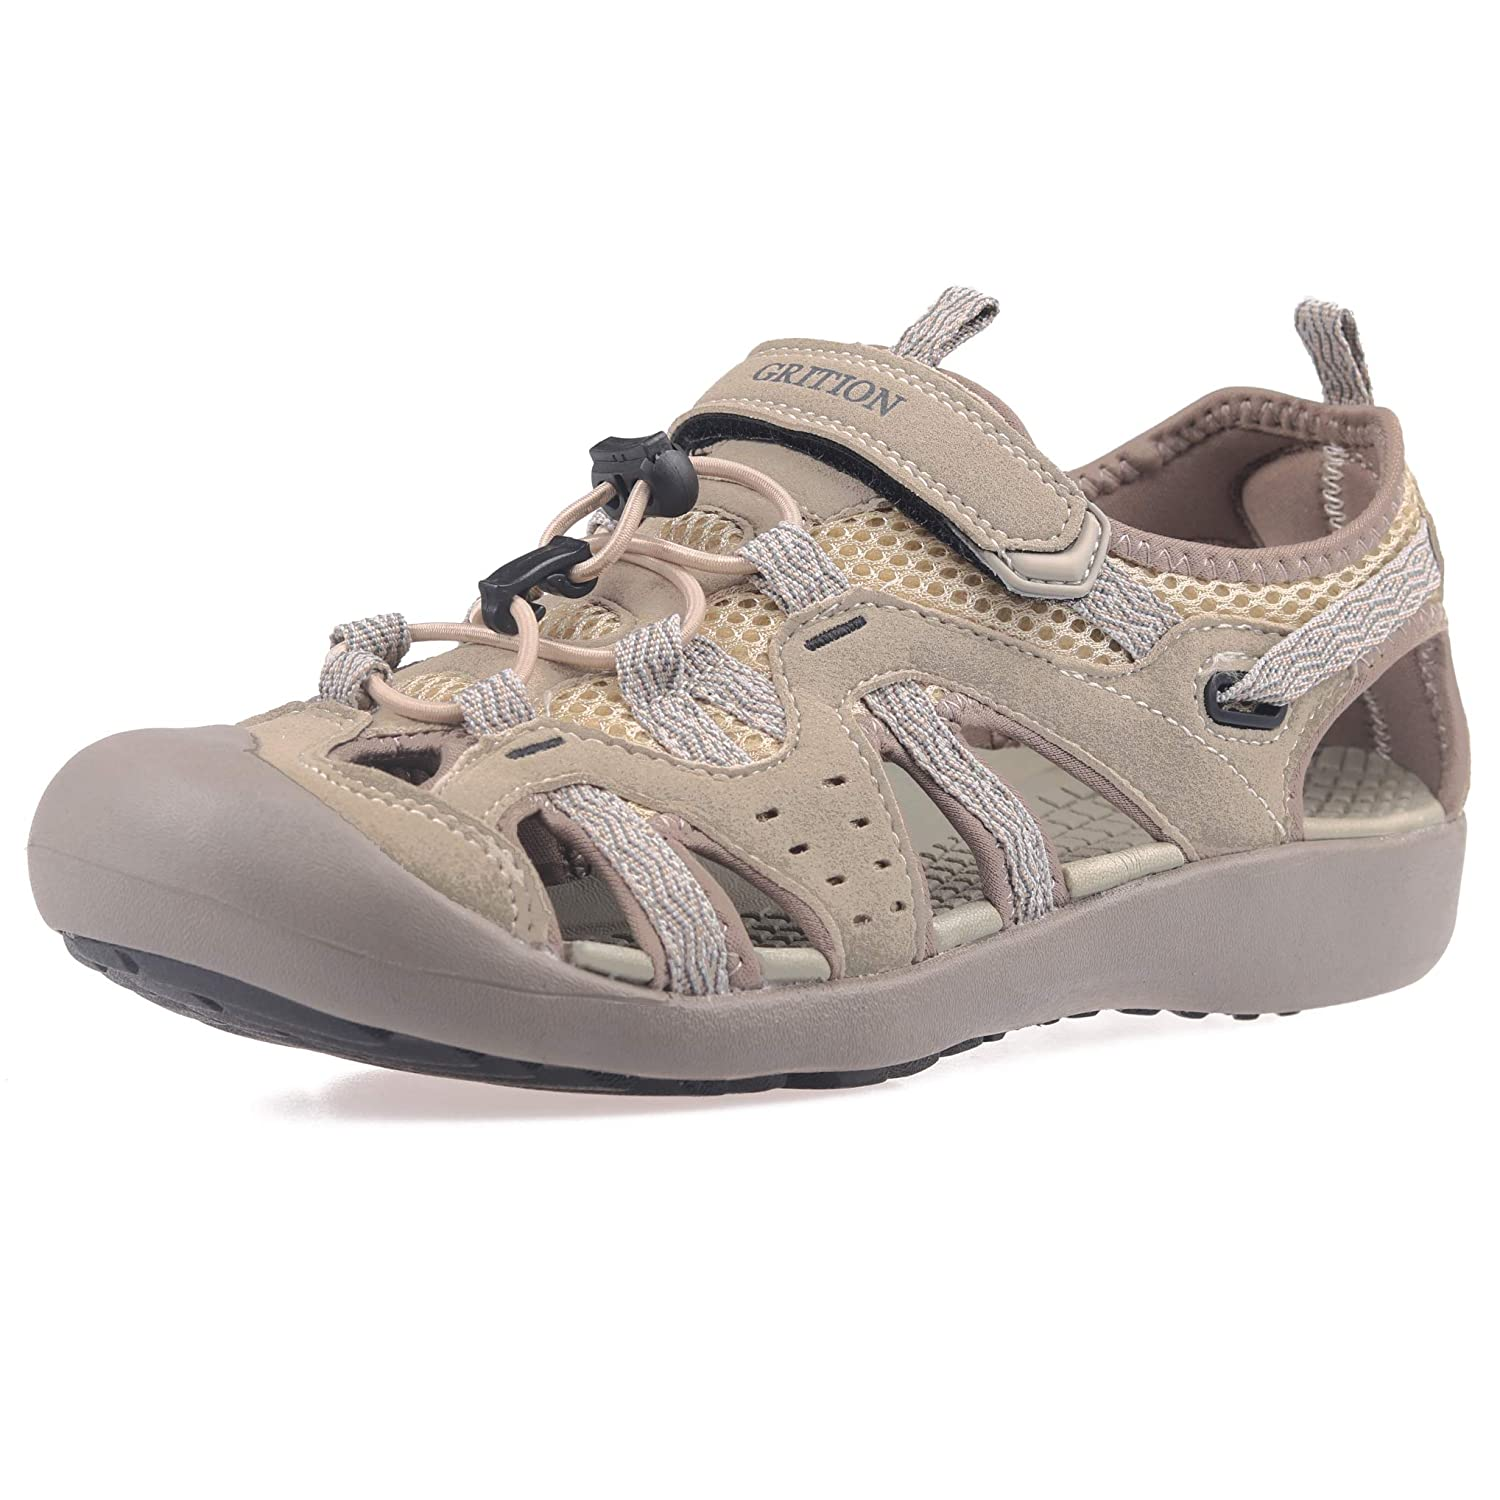 8e27fb4e74e61 GRITION Women Outdoor Hiking Sandals Summer Beach Sport Comfort Adjustable  Closed Toe Protection Casual Breathable Water Shoes Athletic Walking Sandal  ...